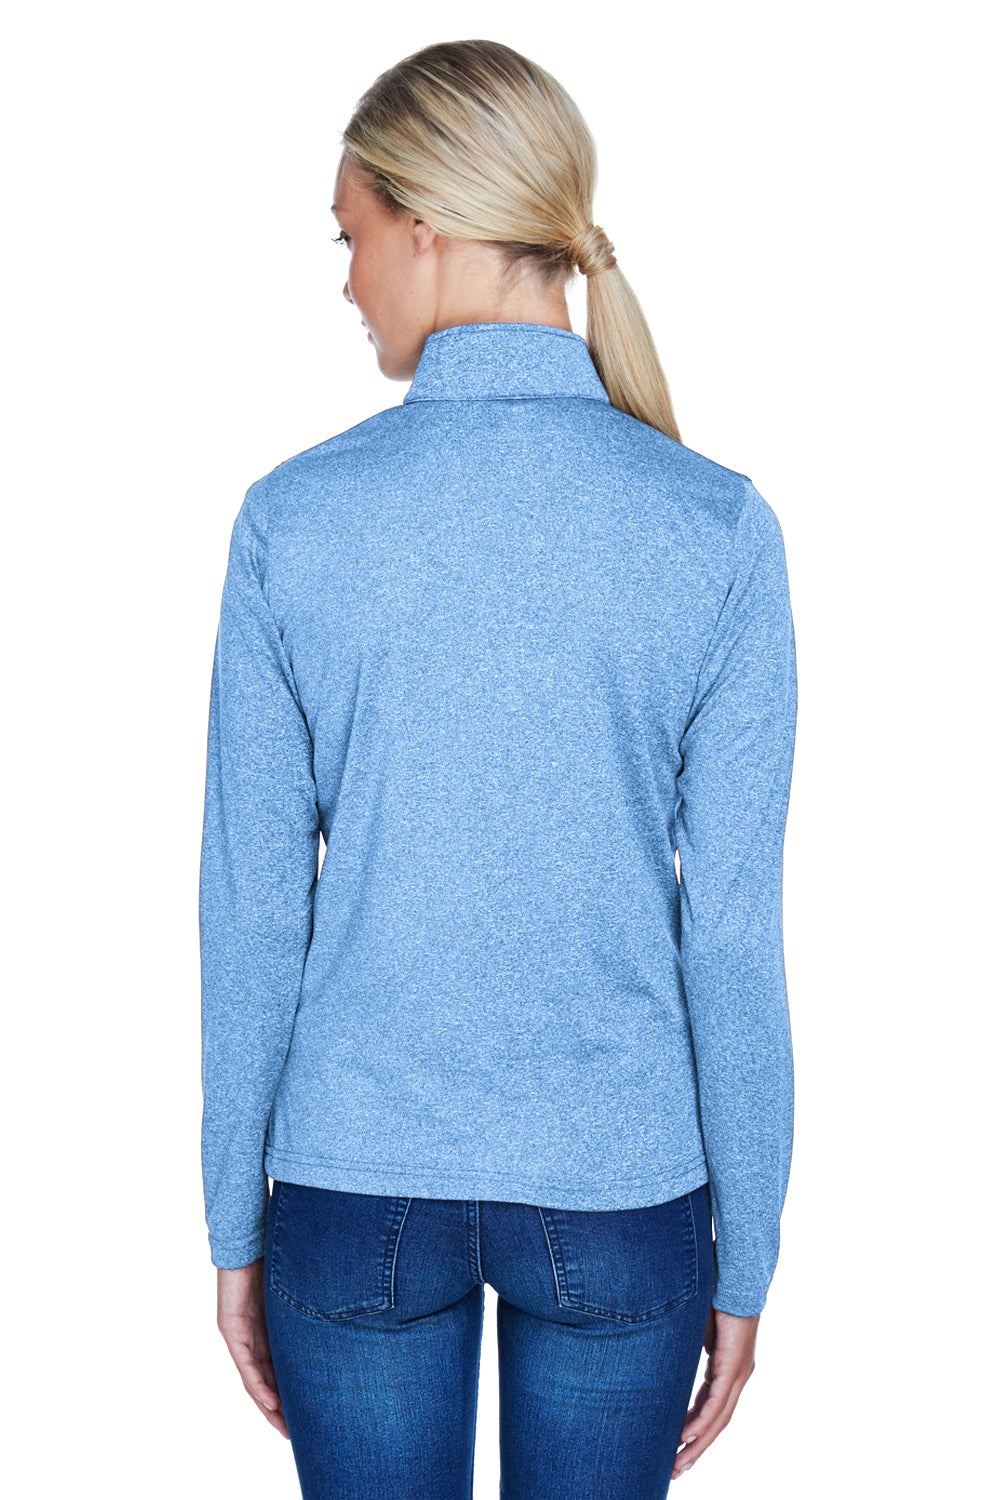 UltraClub 8618W Womens Heather Cool & Dry Performance Moisture Wicking 1/4 Zip Sweatshirt Columbia Blue Back